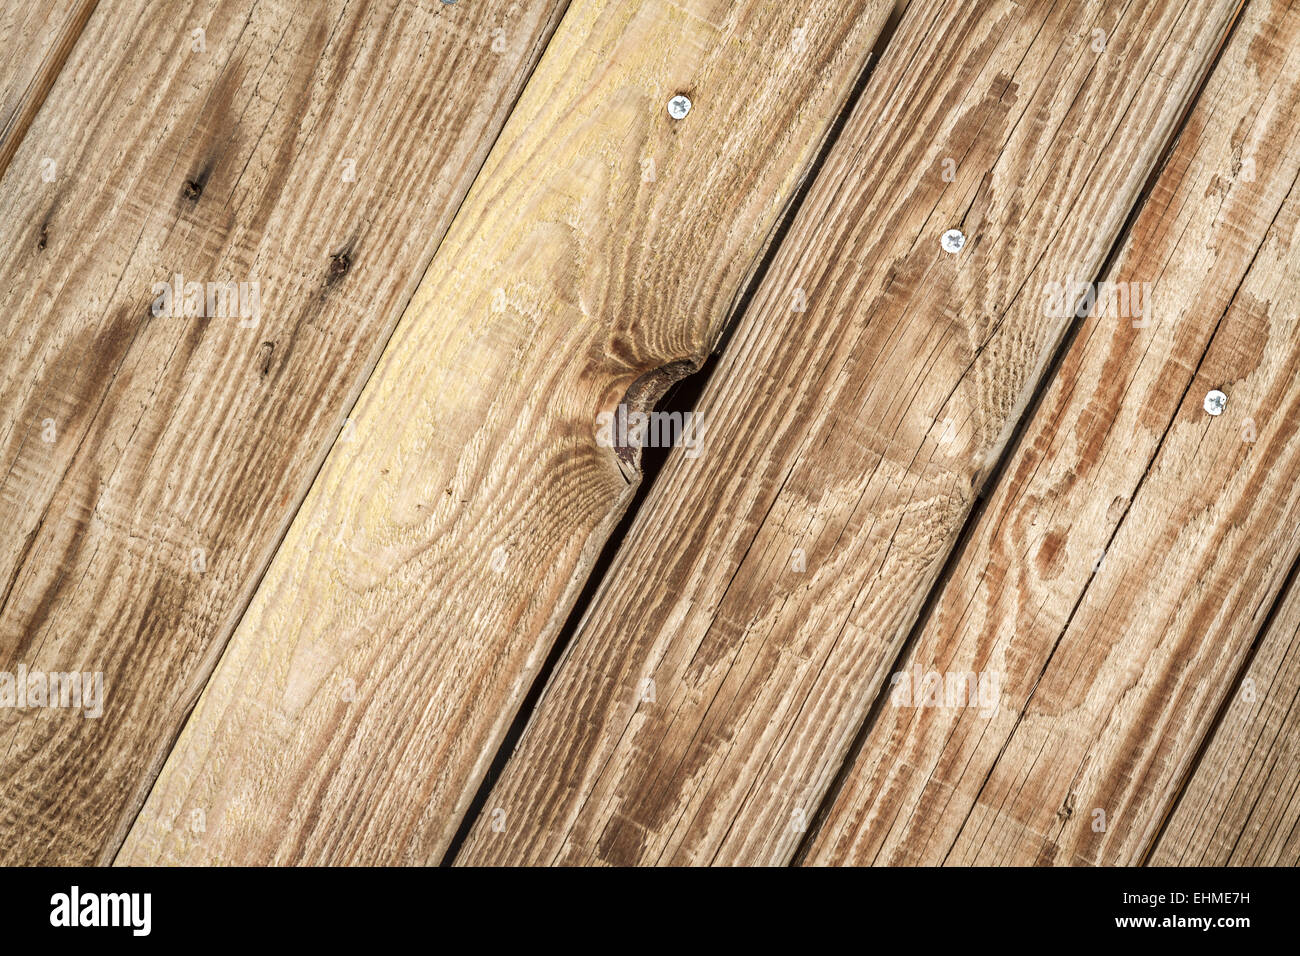 Rustic weathered old barn wood background with knots and nail holes - Stock Image